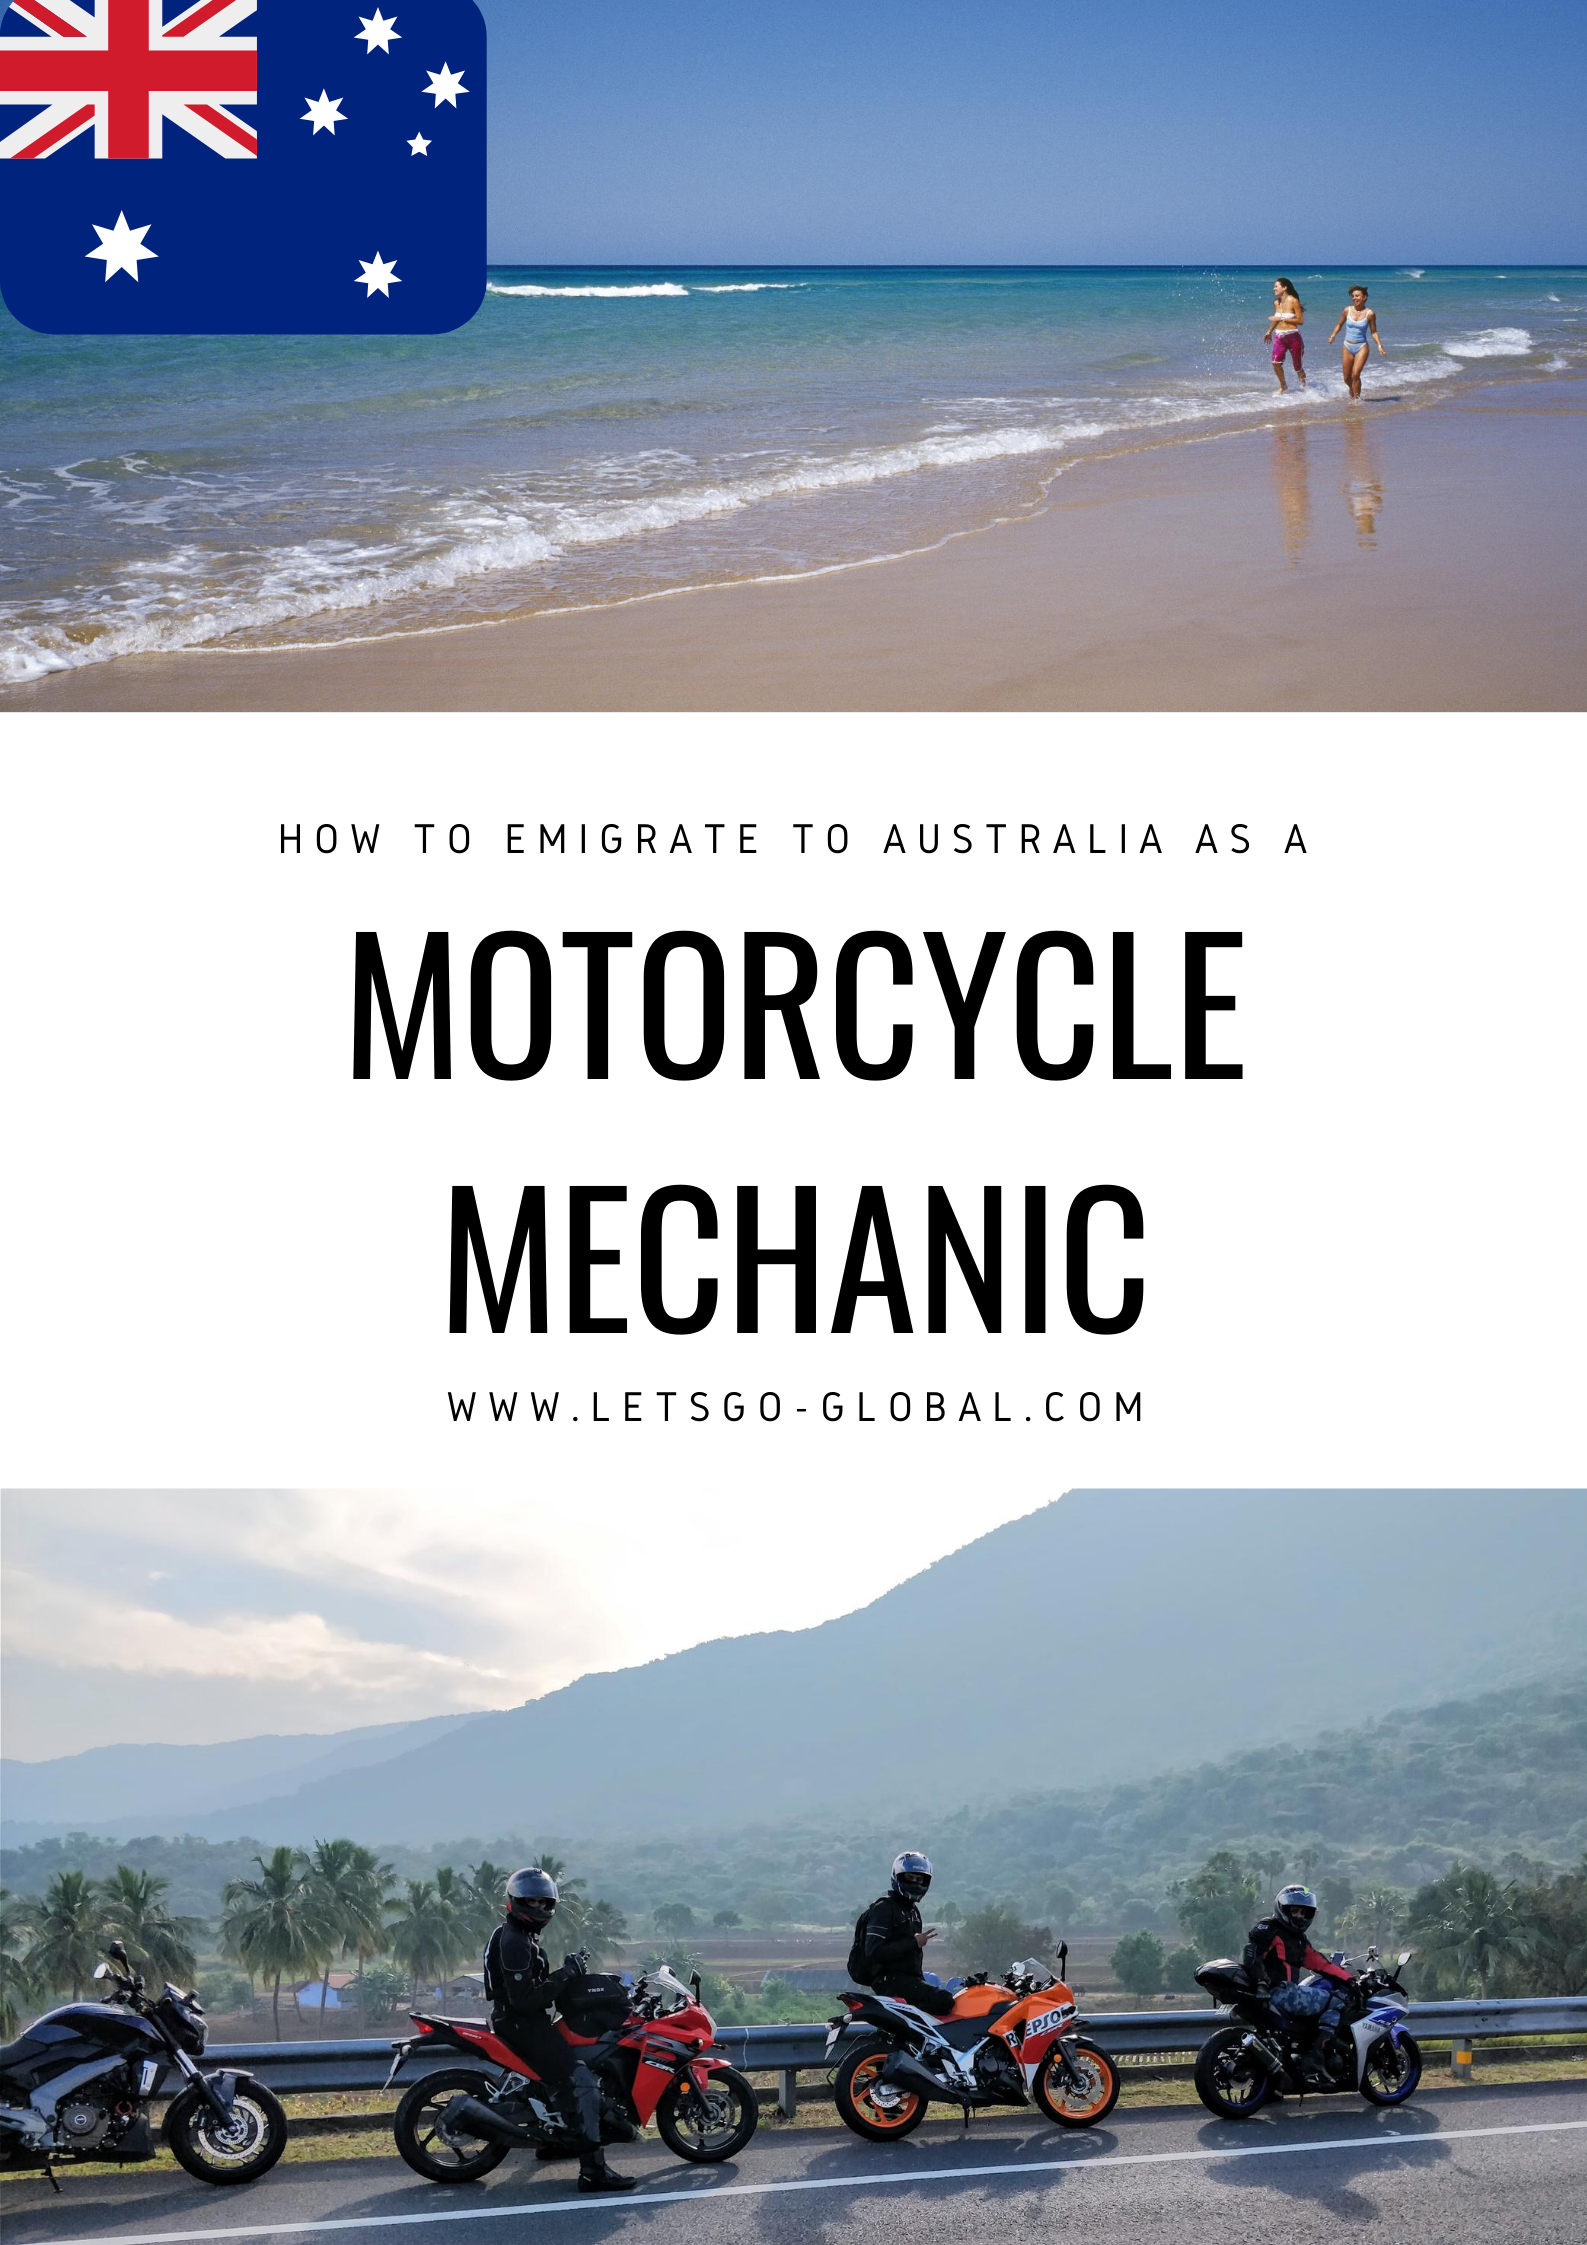 Migrate to Australia as a motorcycle mechanic